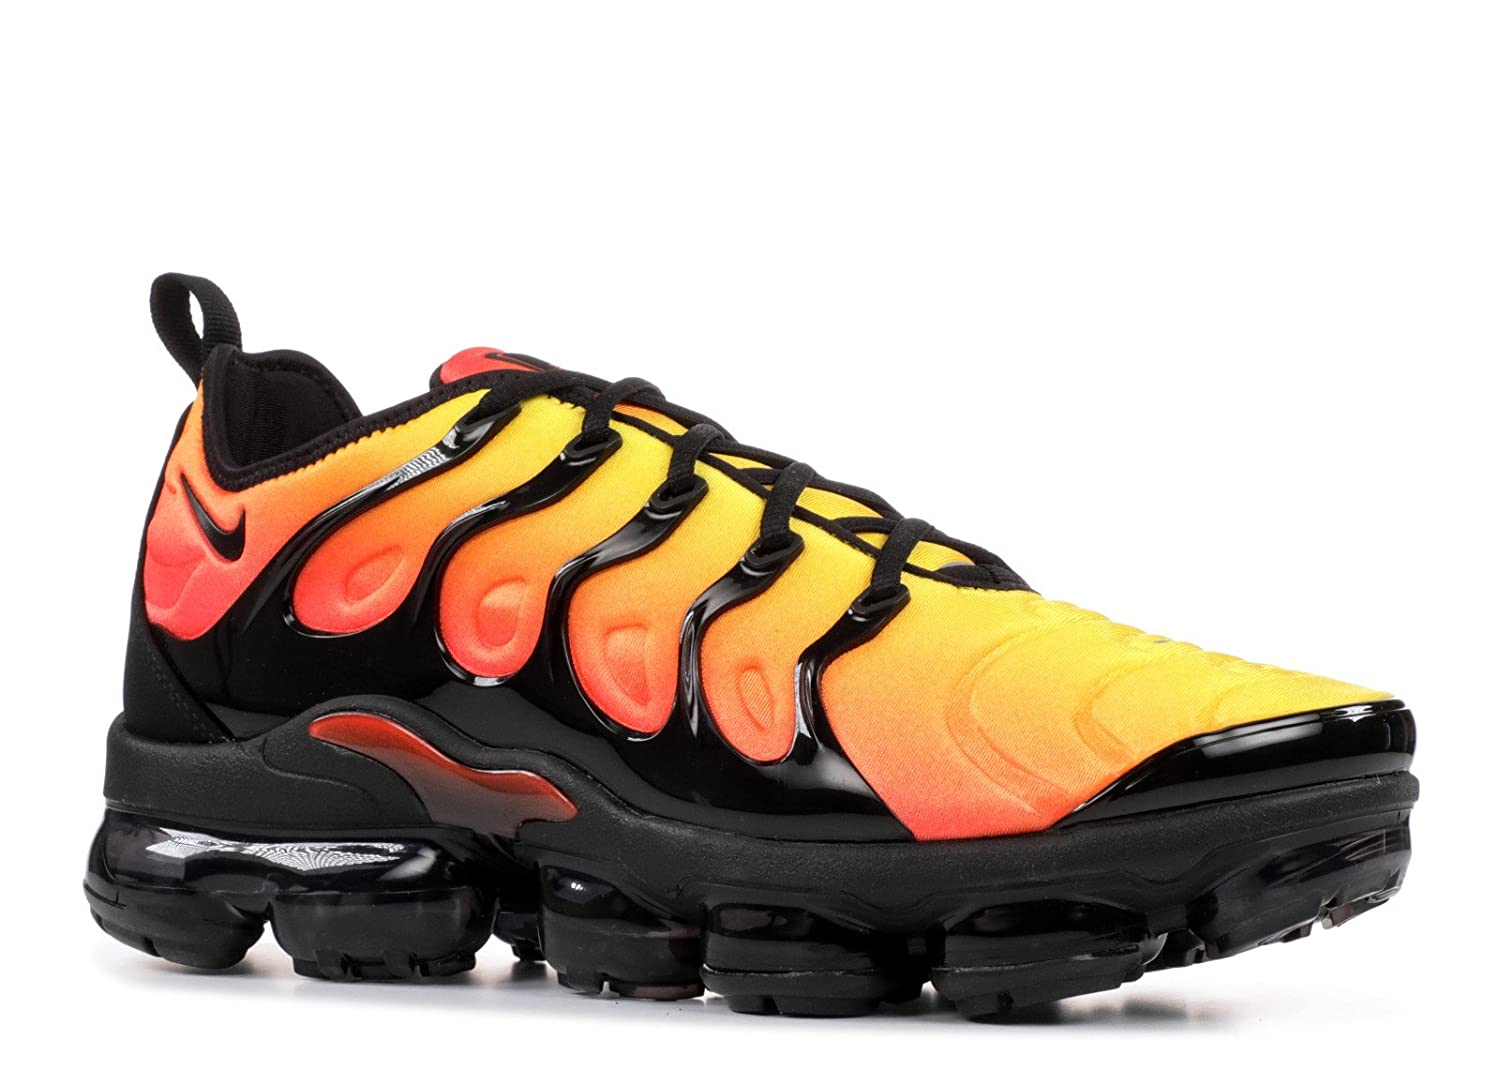 2b47f11854 Amazon.com | Nike Mens Air Vapormax Plus Black/Total Orange Neoprene Size  13 | Athletic